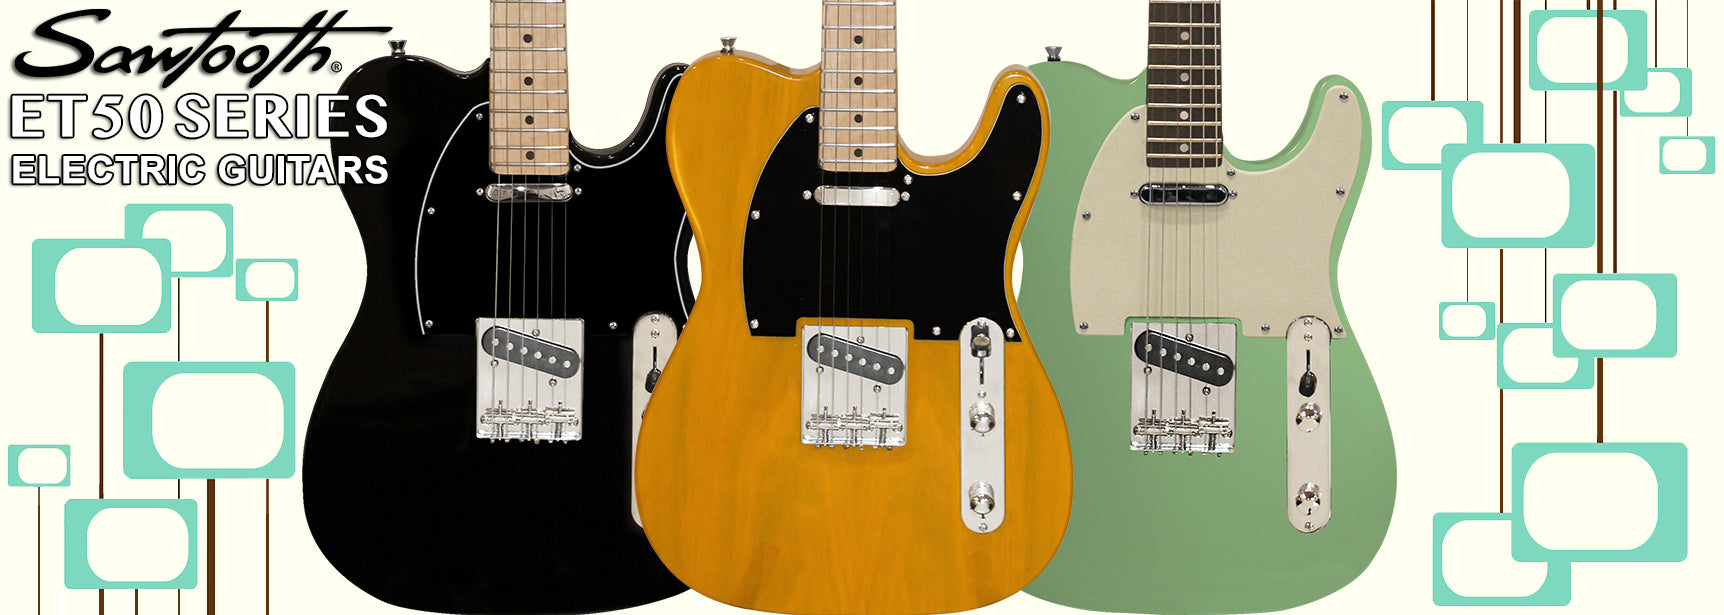 Sawtooth ET50 Series Electric Guitars